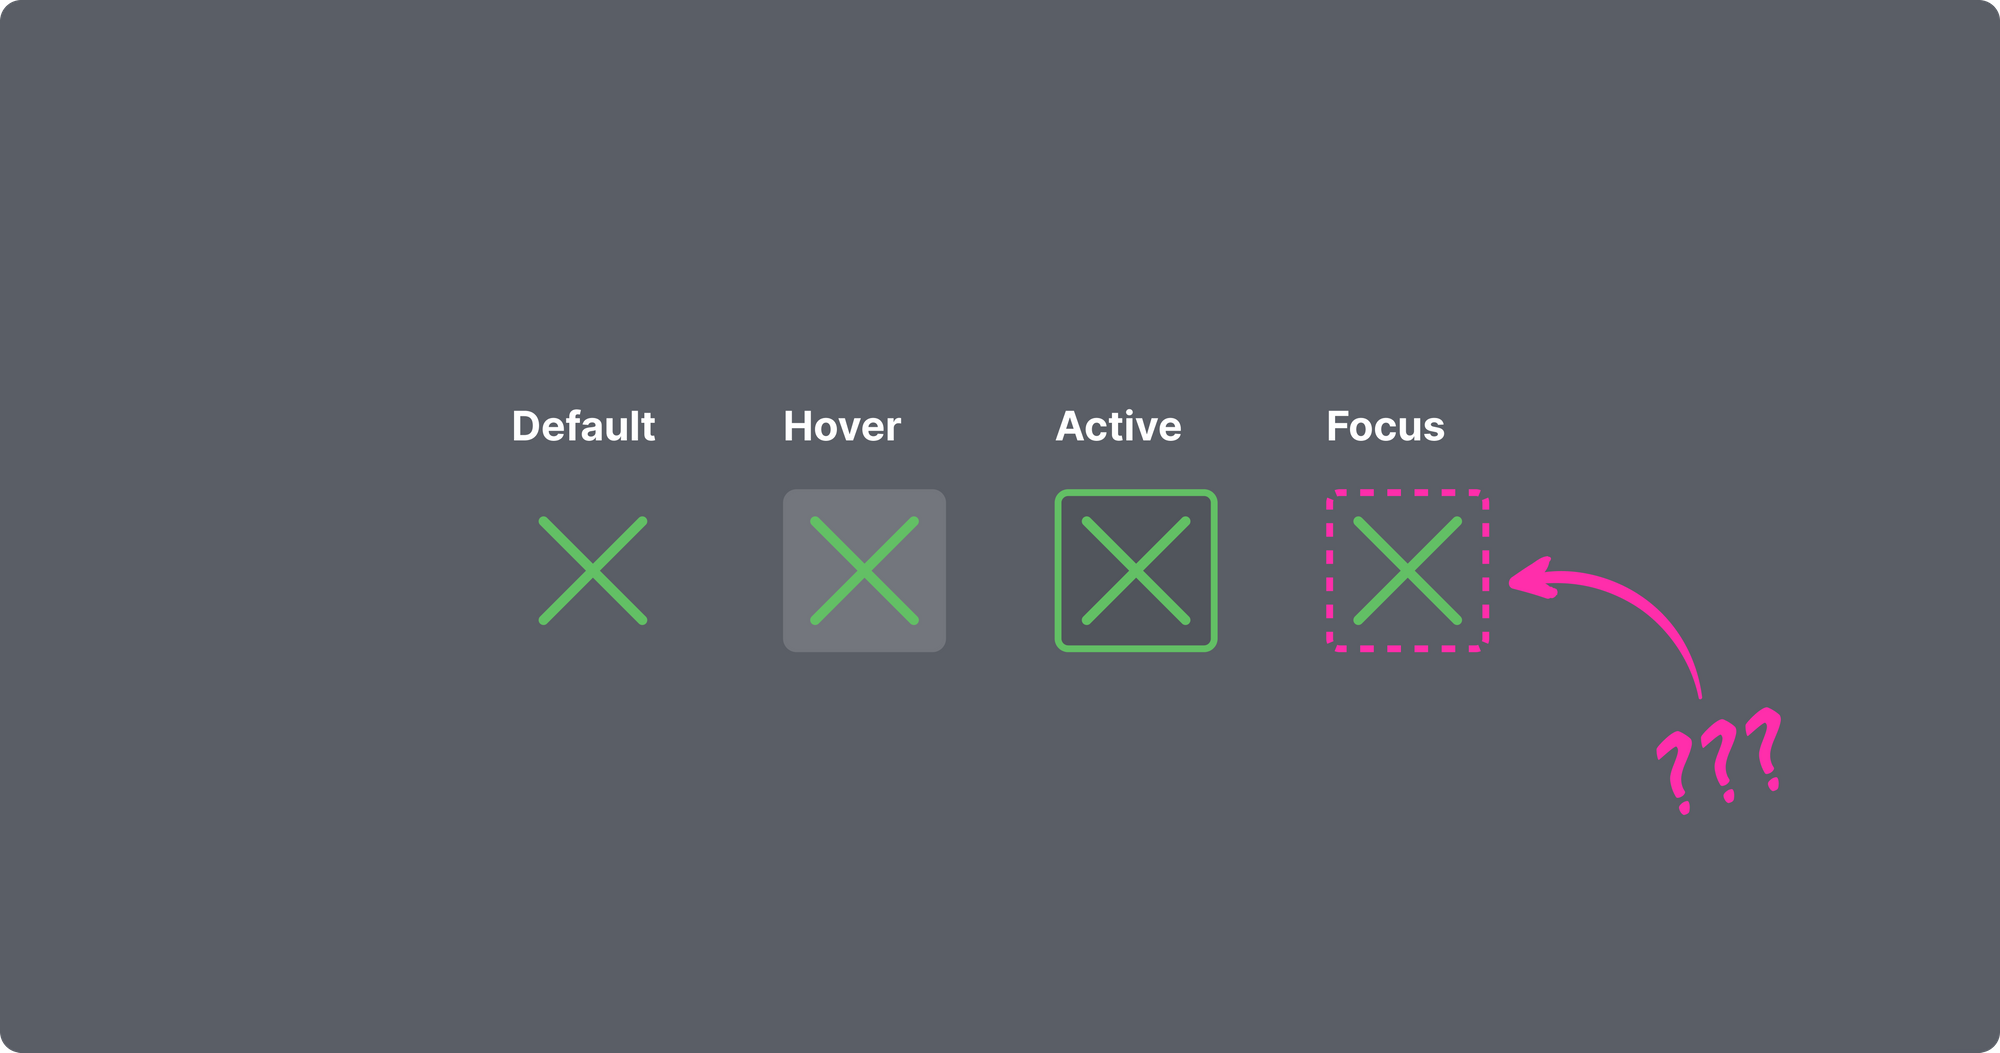 An example of a modal close button with a missing focus state